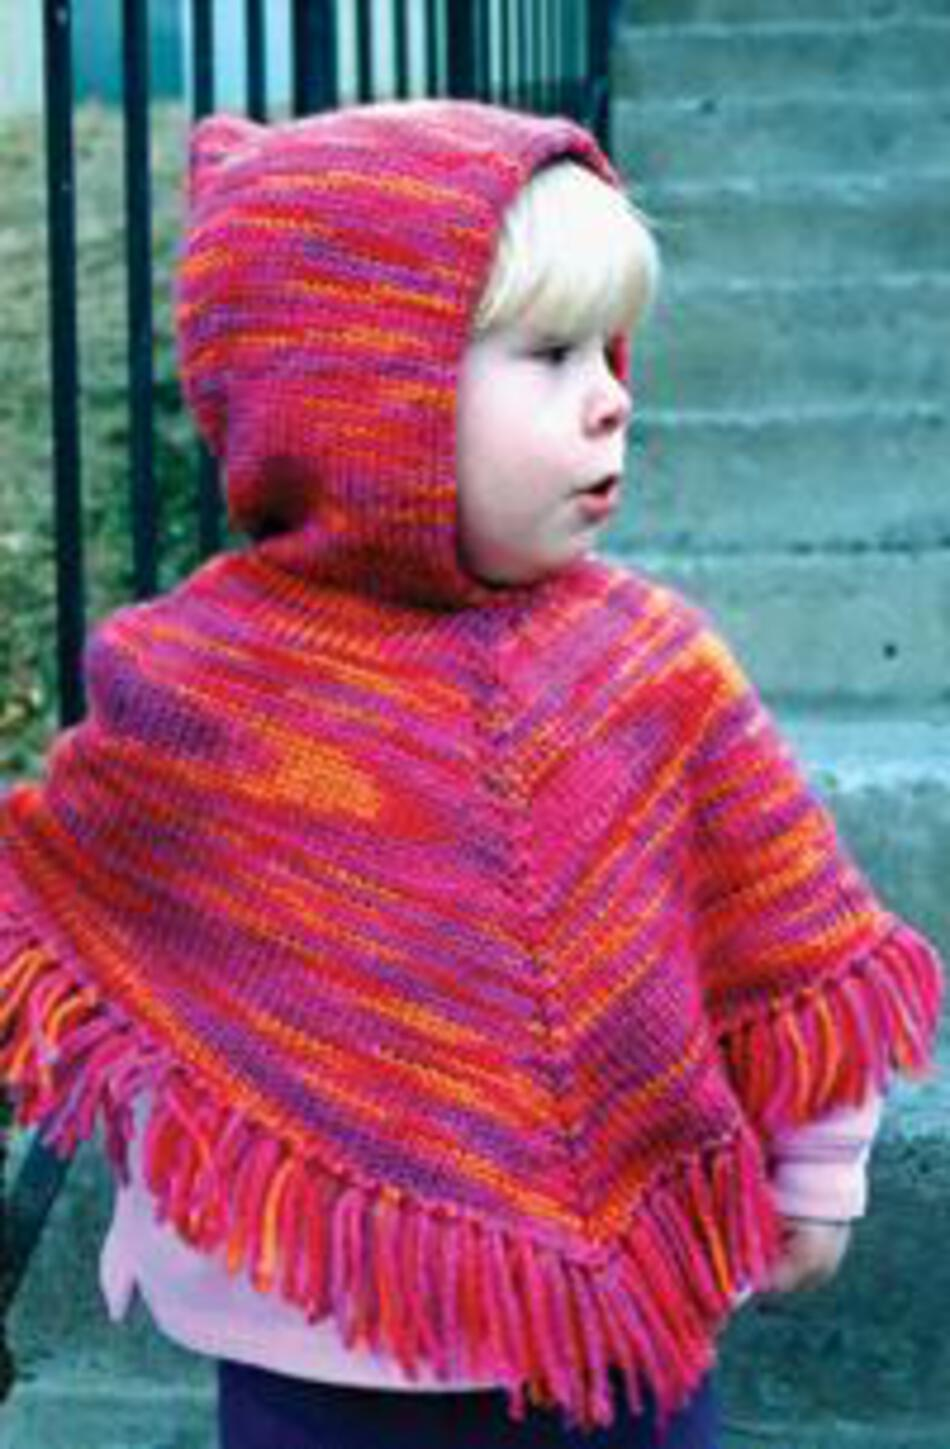 Childrens hooded poncho by knitting pure and simple knitting knitting patterns childrens hooded poncho by knitting pure and simple bankloansurffo Image collections